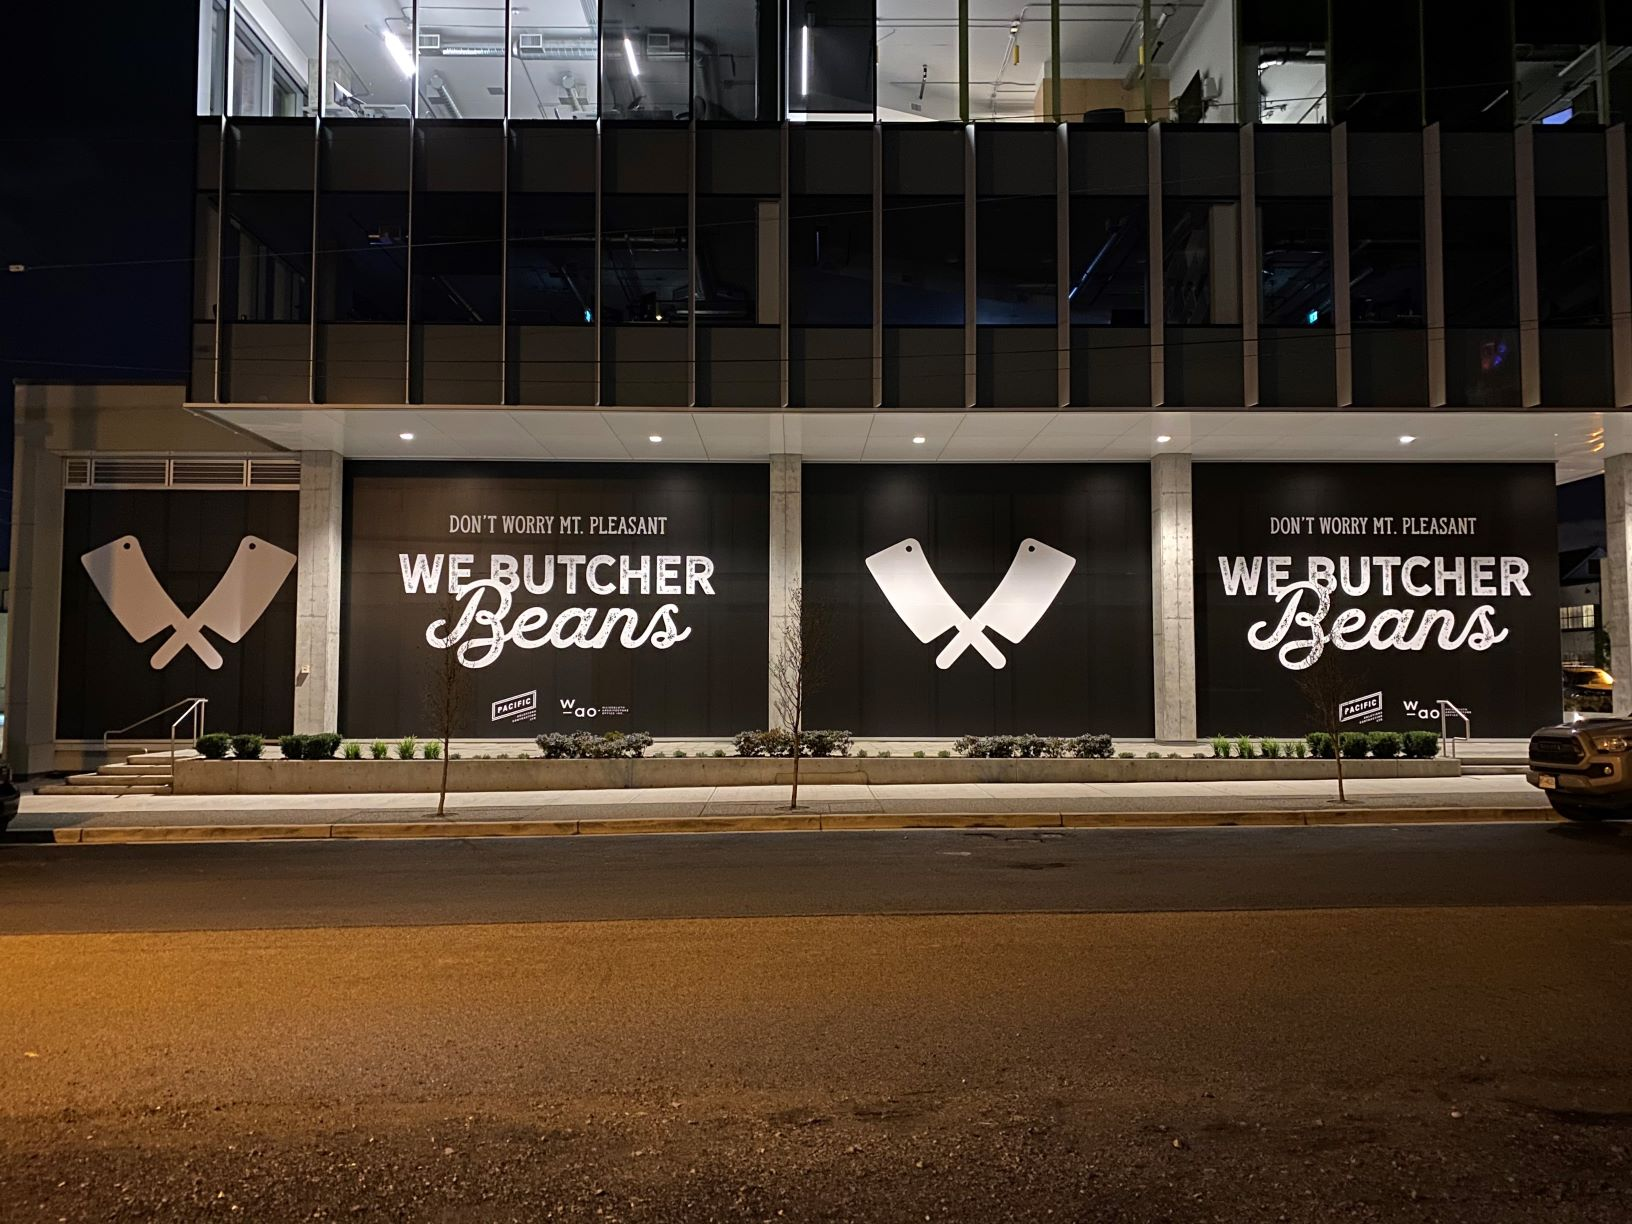 Premier Graphics used Drytac SpotOn Matte White for window graphics for The Very Good Food Company.